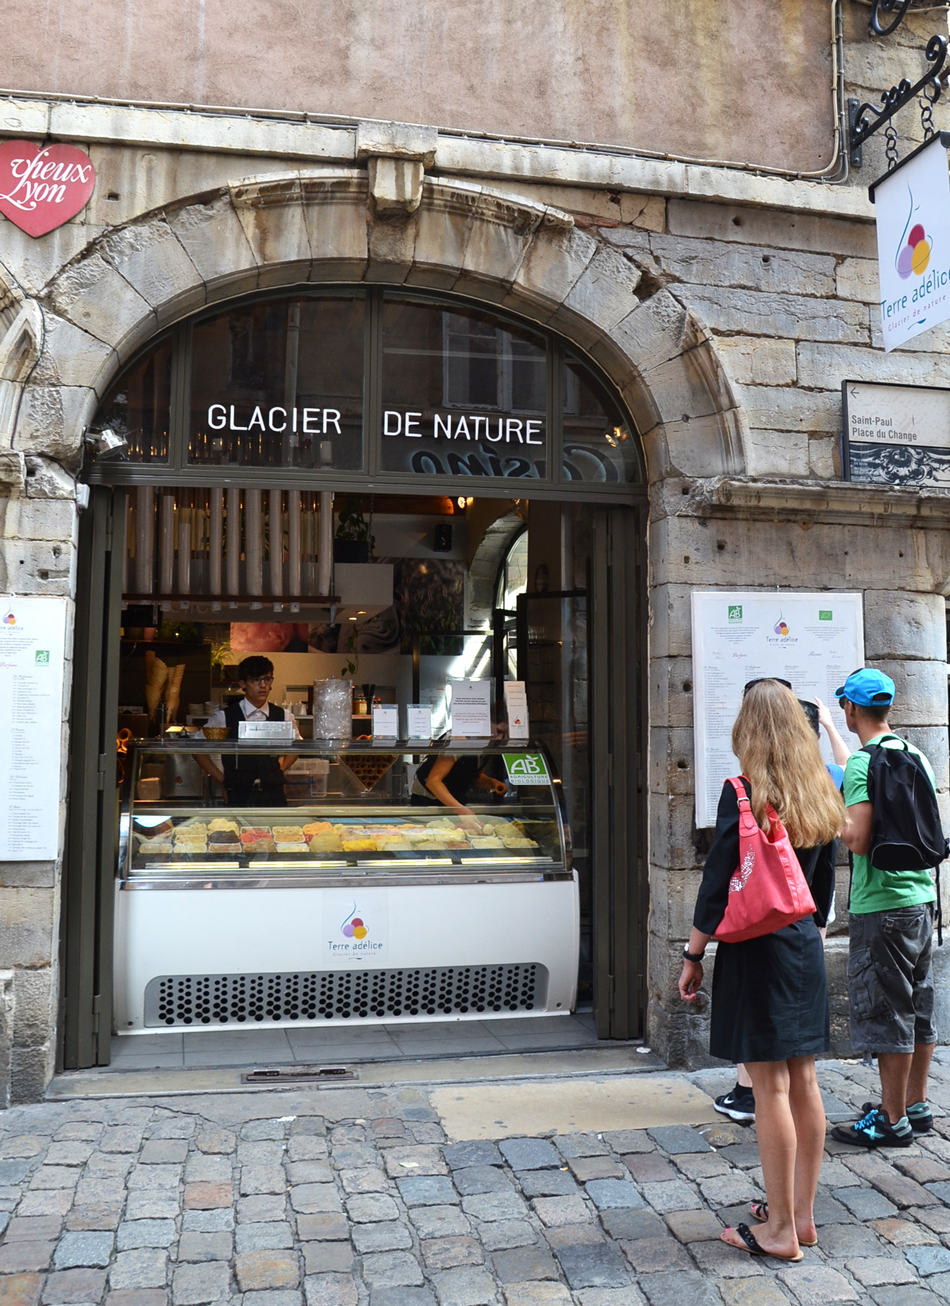 Meilleure glace lyon terre adelice